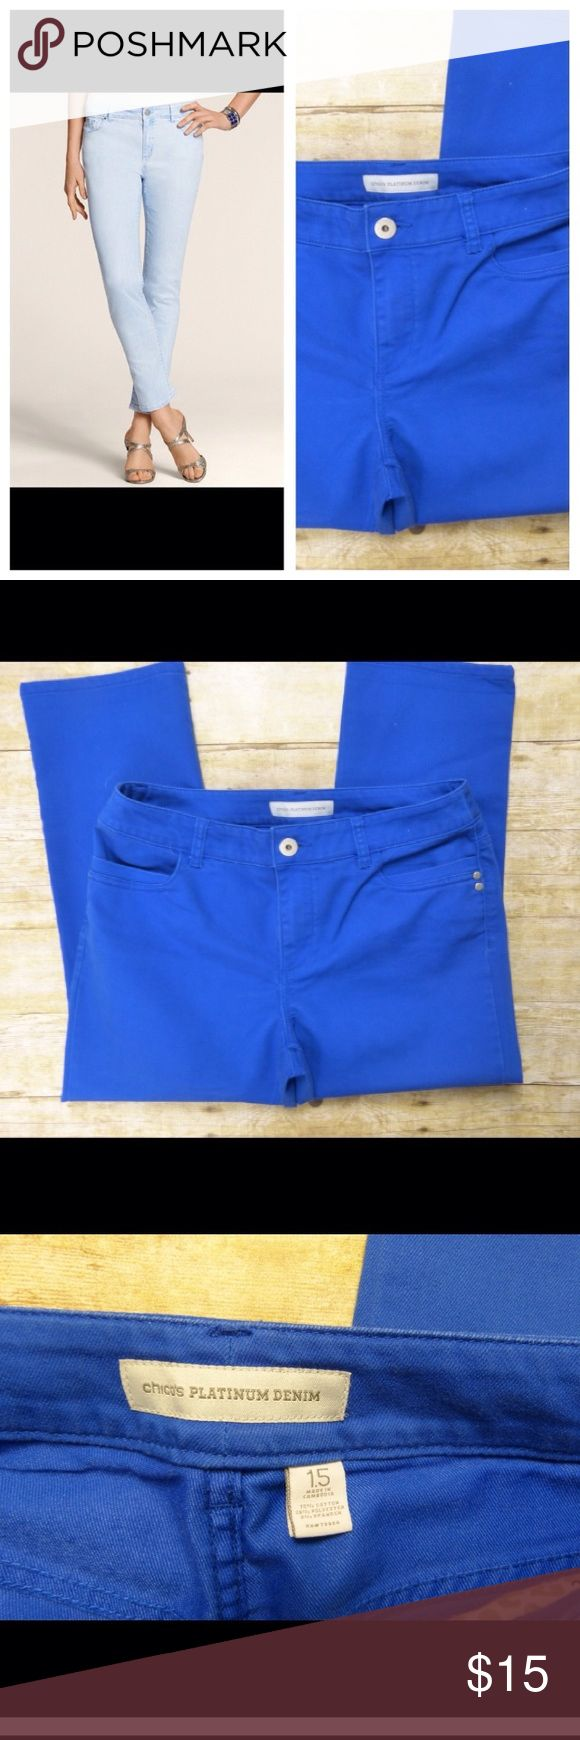 """Chicos Platinum Denim Royal Blue Skimmer Jeans Chicos Platinum Denim Royal Blue Slimmer Jeans Size 1.5 Regular Size 10  Appear new  78% cotton, 28% poly and 2% spandex """"Skimmer"""" 9"""" rise 16"""" across the waist  23.5"""" inseam Chico's Jeans Ankle & Cropped"""